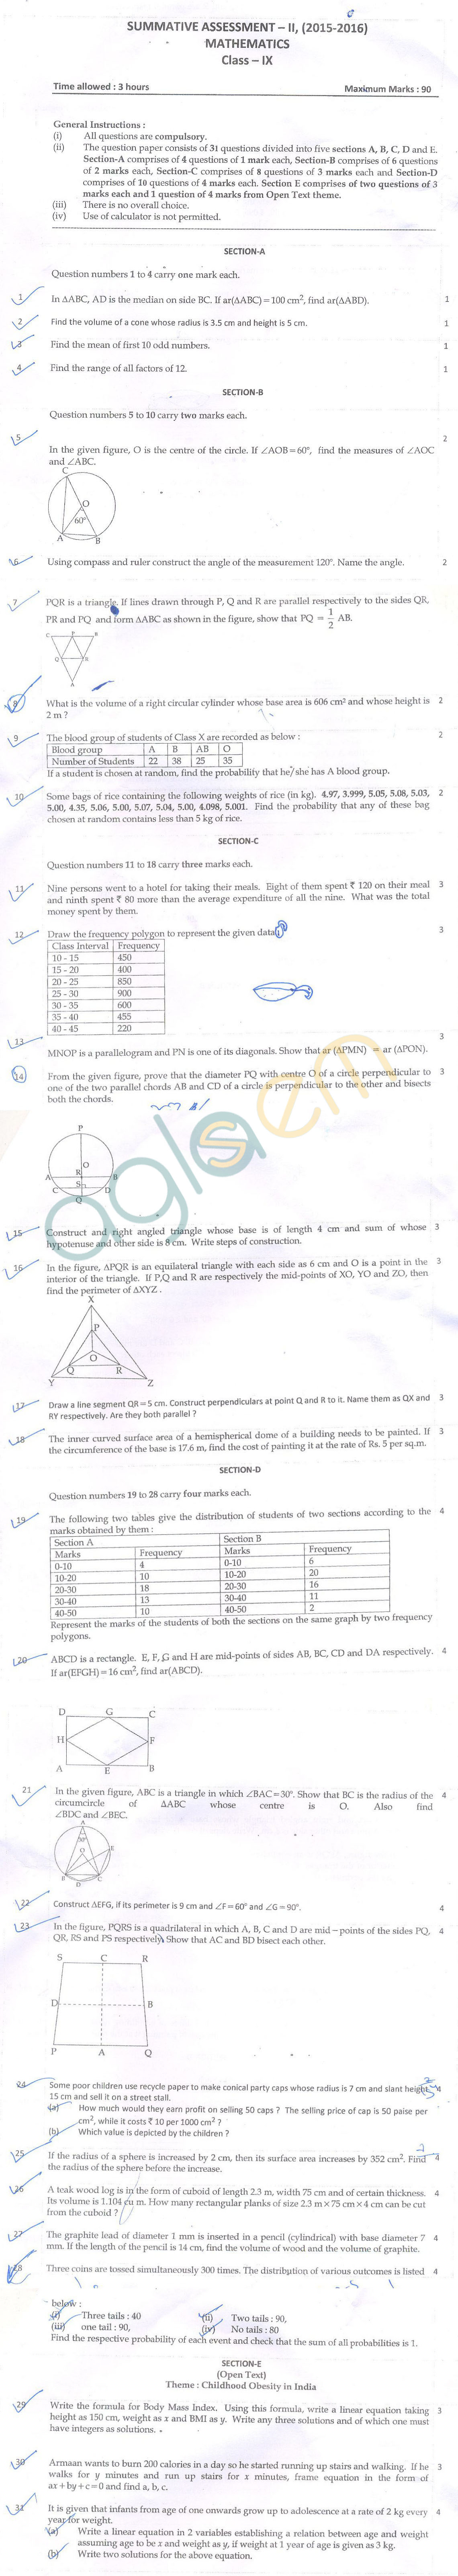 maths sa 1 question paper and answers Cbse website or cbse syllabus, sample papers, test papers website  can  someone give me tricky questions from cbse class 10 mathematics for sa1   you can find class x sa1 and sa2 question papers at cbsetoday dot com but they  do.